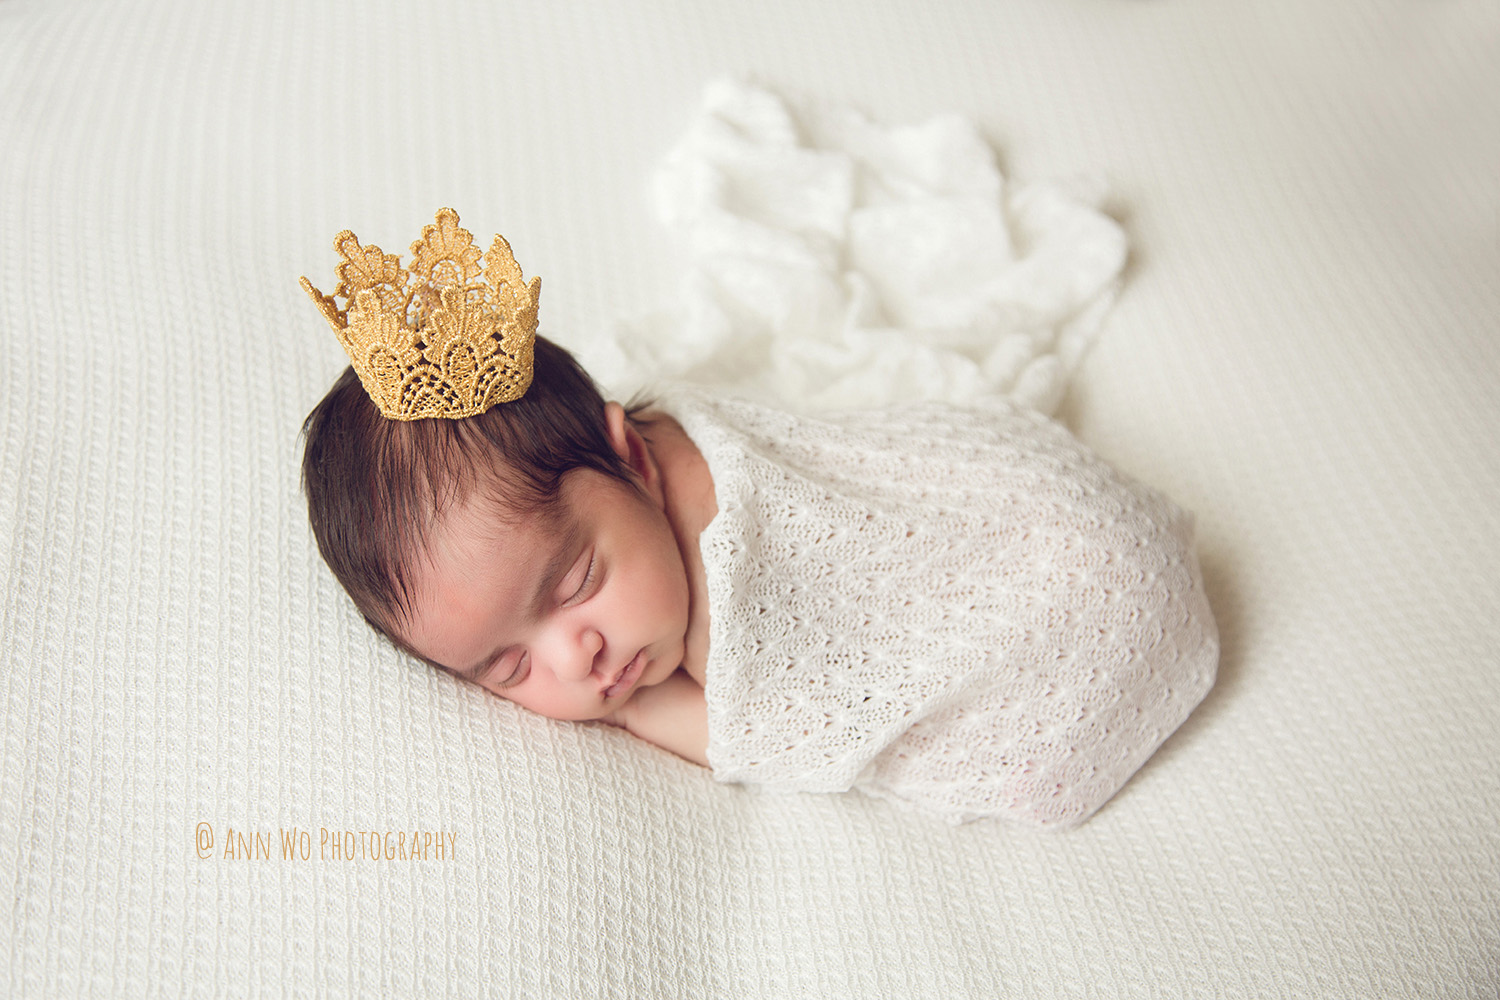 Newborn photography in London white lace setup with golden crown Ann Wo